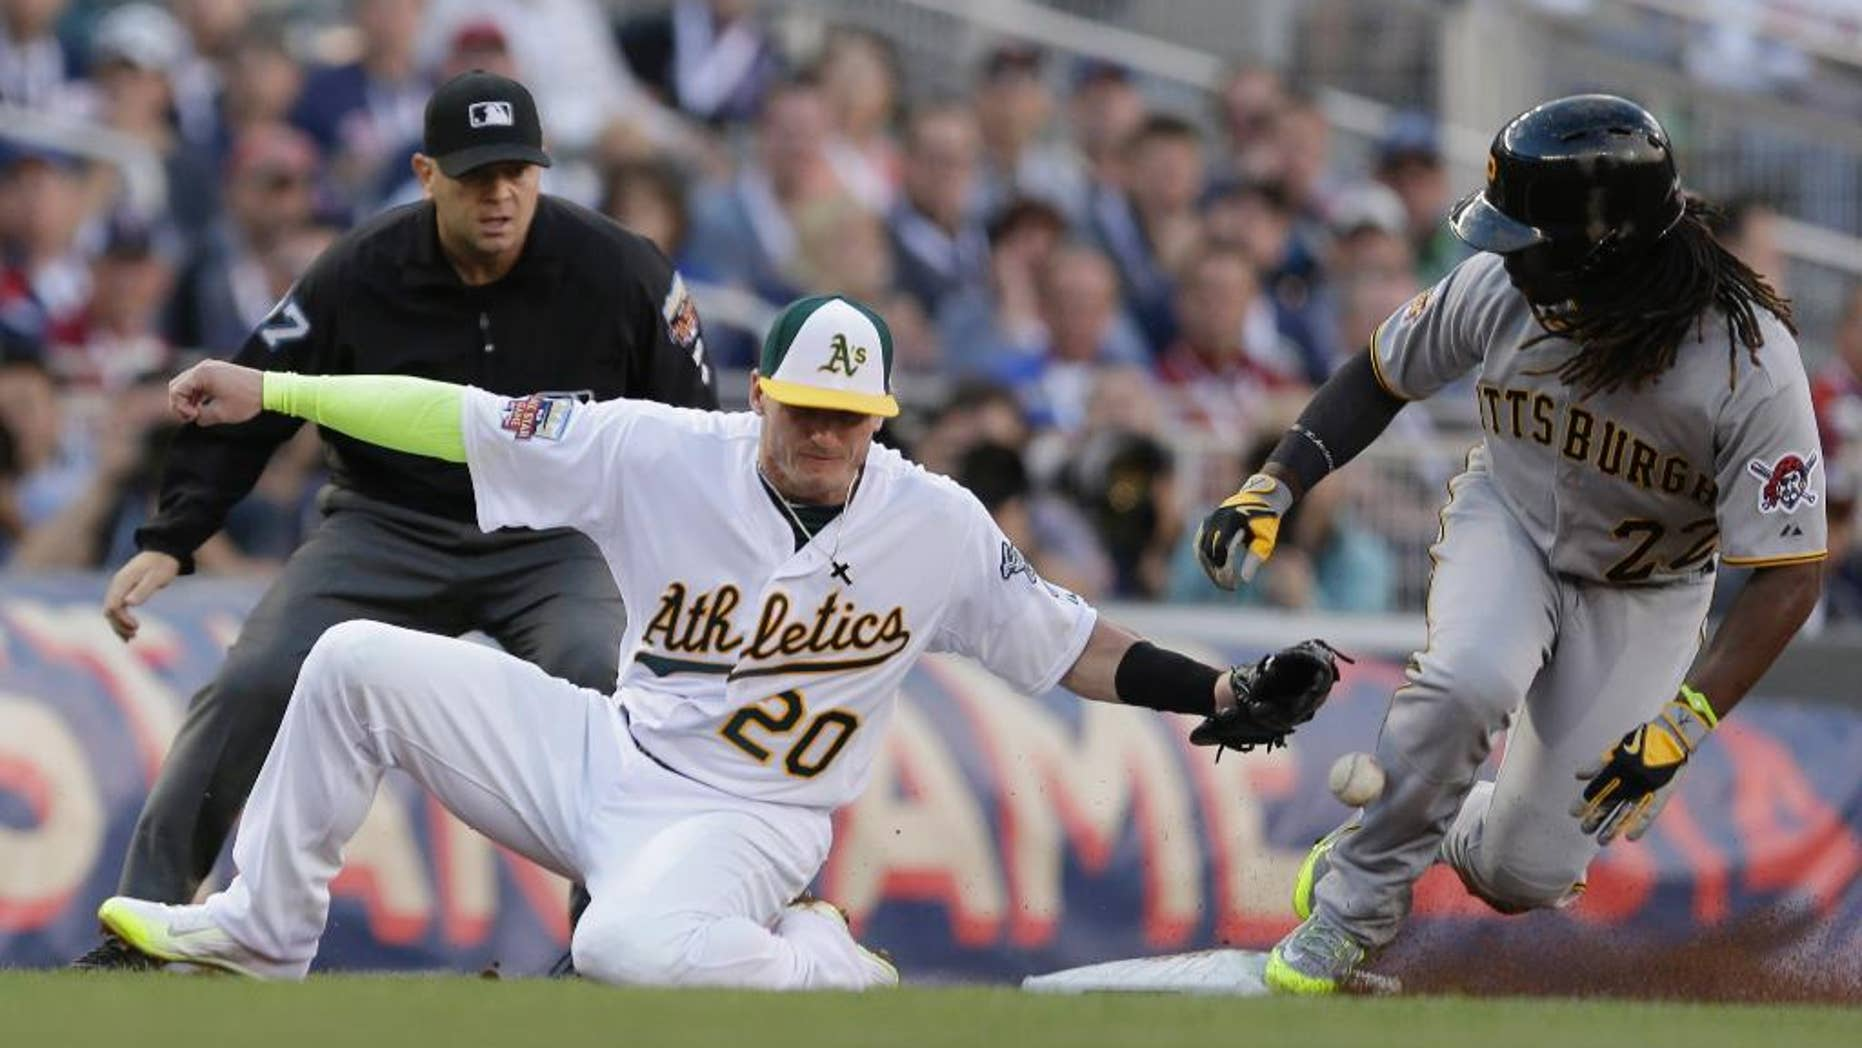 National League outfielder Andrew McCutchen, of the Pittsburgh Pirates, steals third base as American League Josh Donaldson, of the Oakland Athletics, tries to make the tag during the first inning of the MLB All-Star baseball game, Tuesday, July 15, 2014, in Minneapolis. (AP Photo/Jeff Roberson)